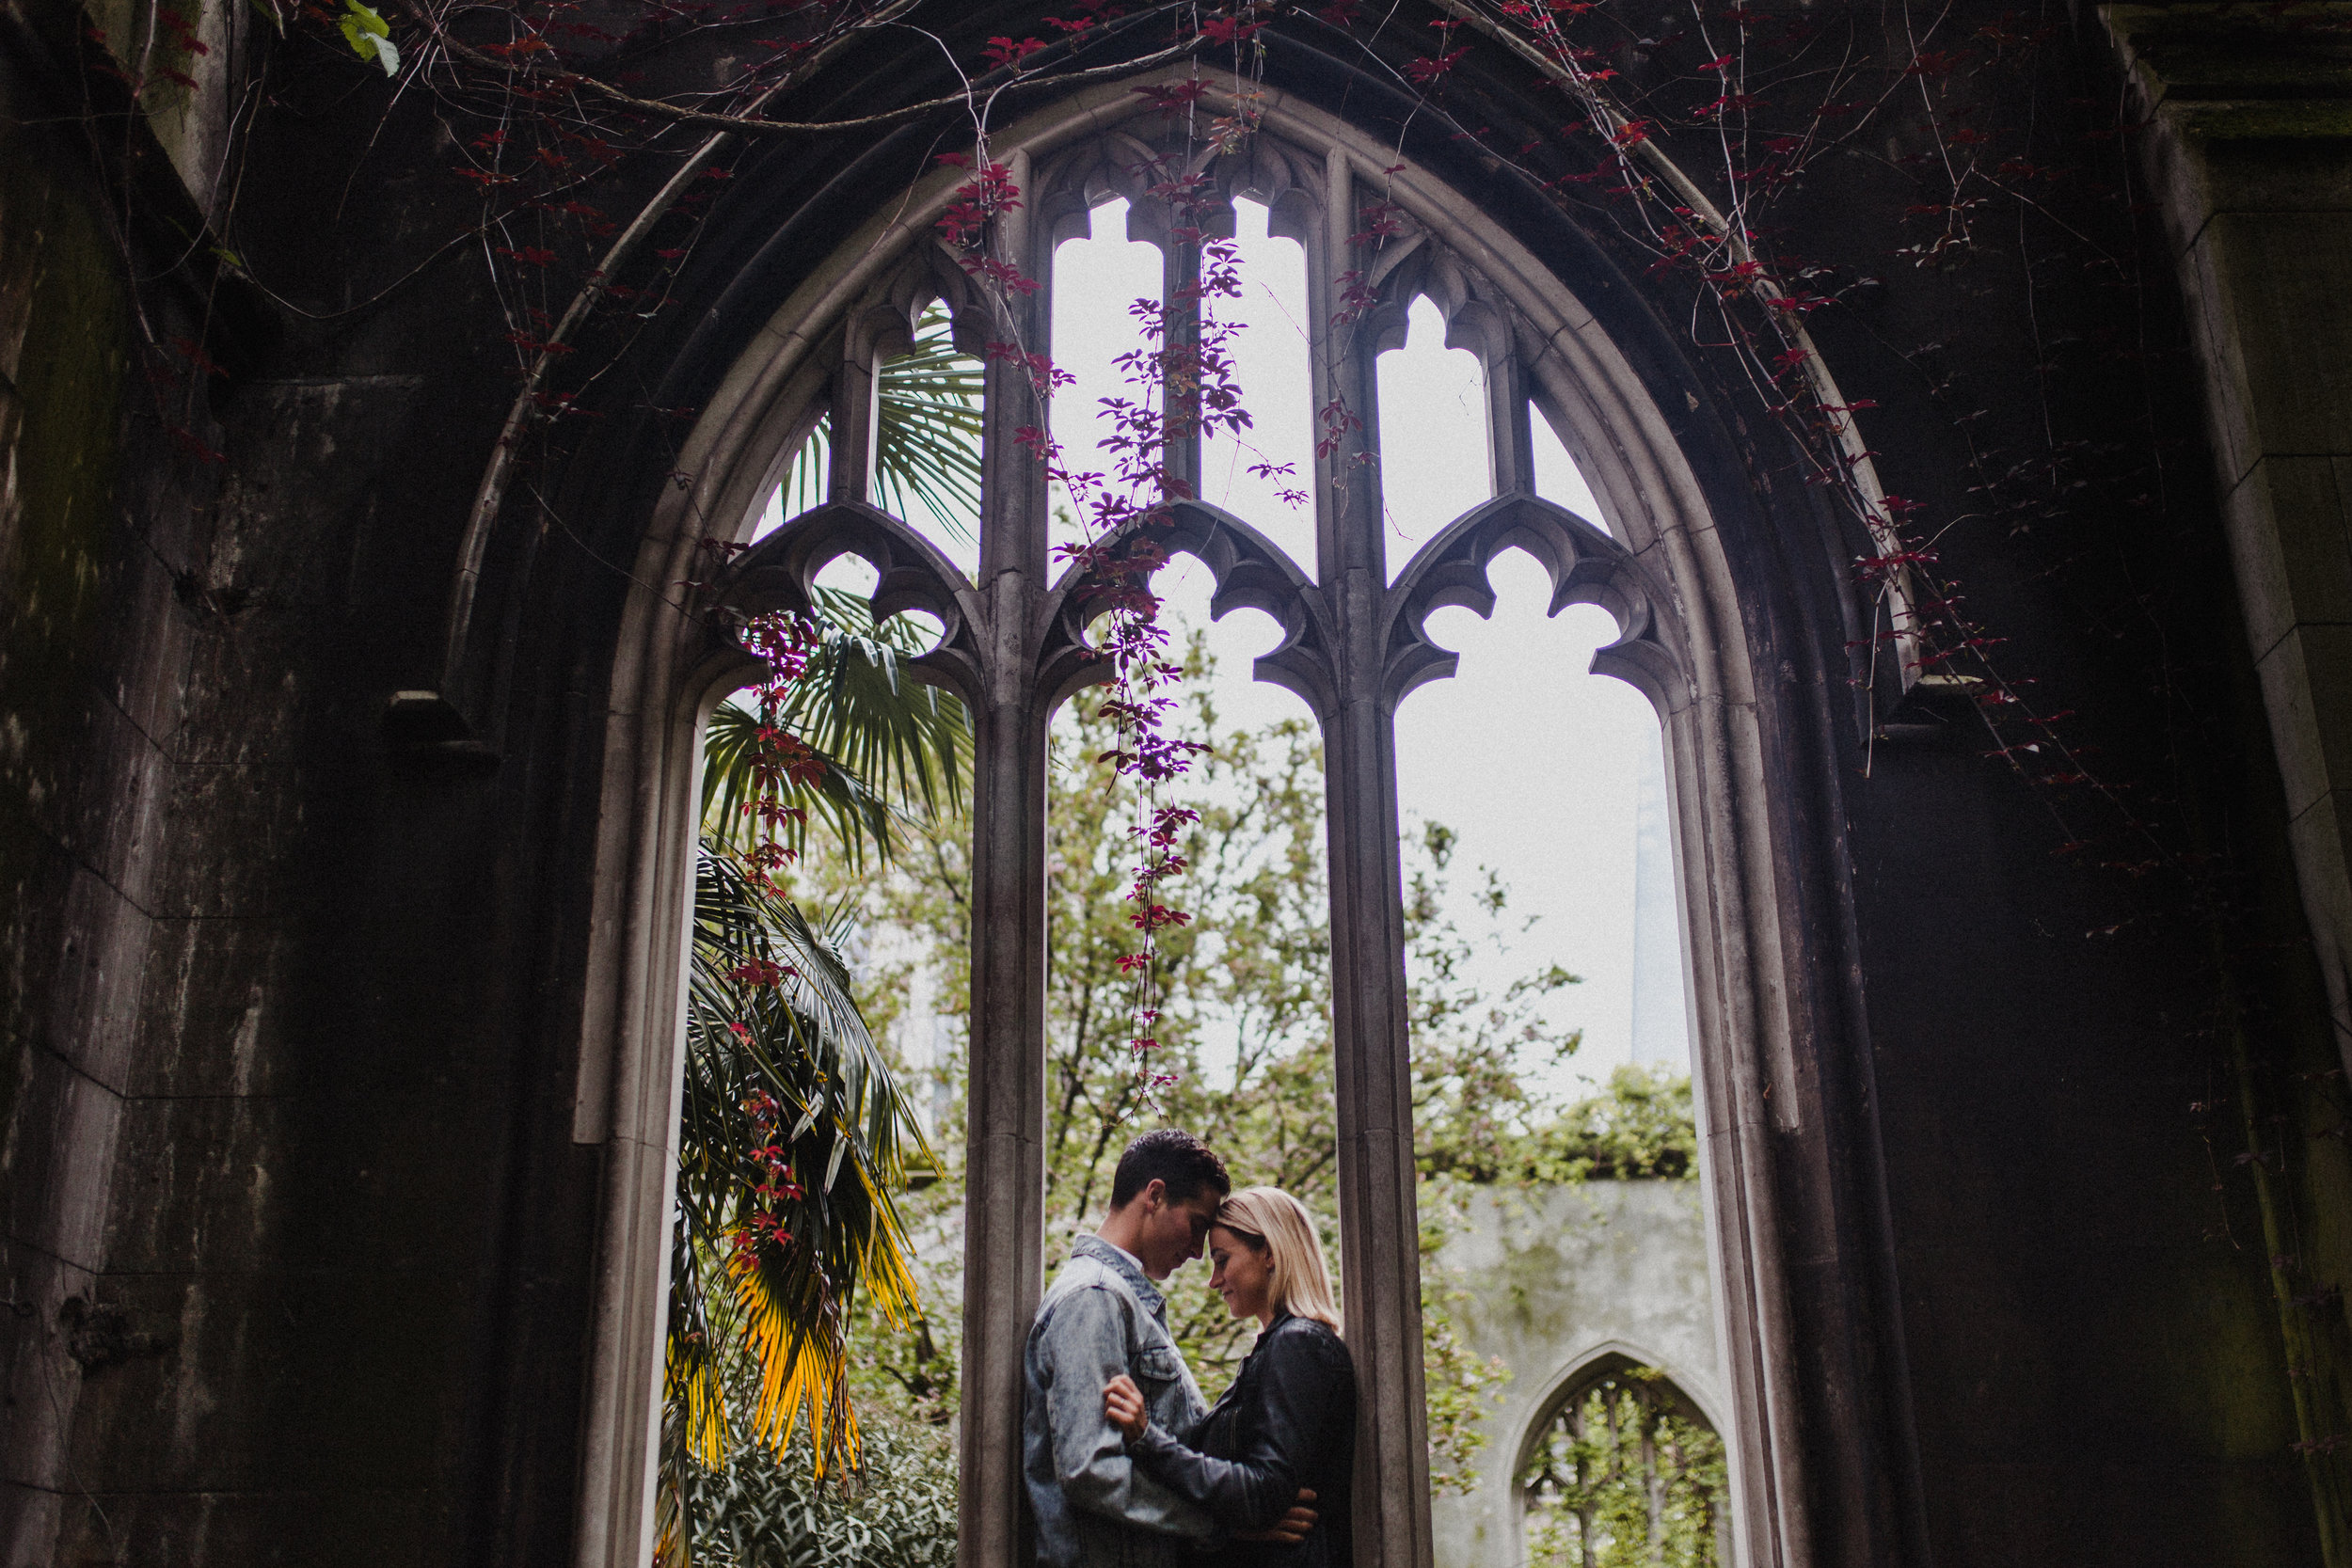 A beautiful stone window frames the couple in this portrait at the gardens at St Dunstan-in-the-East